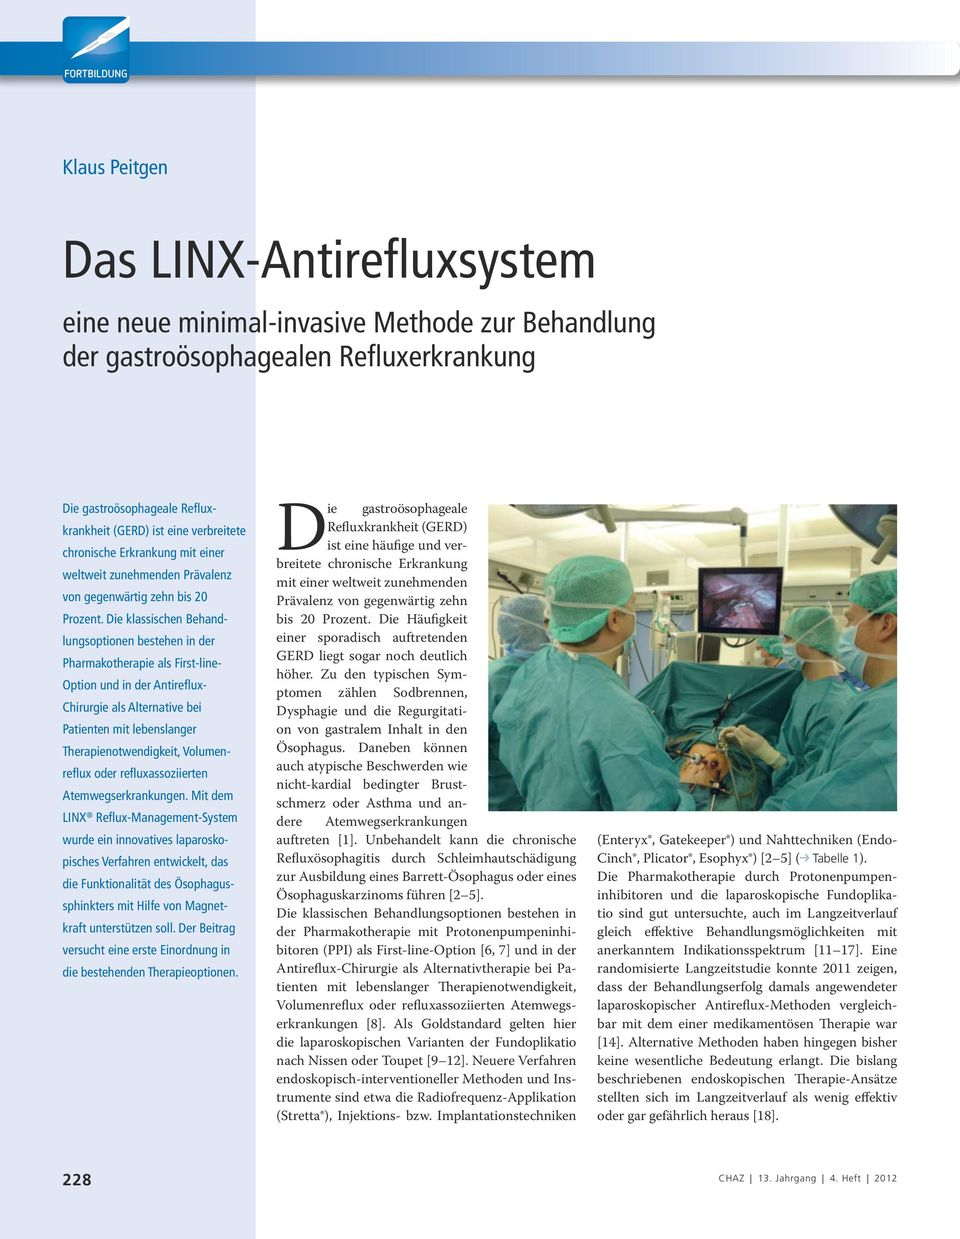 Die klassischen Behandlungsoptionen bestehen in der Pharmakotherapie als First-line- Option und in der Antireflux- Chirurgie als Alternative bei Patienten mit lebenslanger Therapienotwendigkeit,